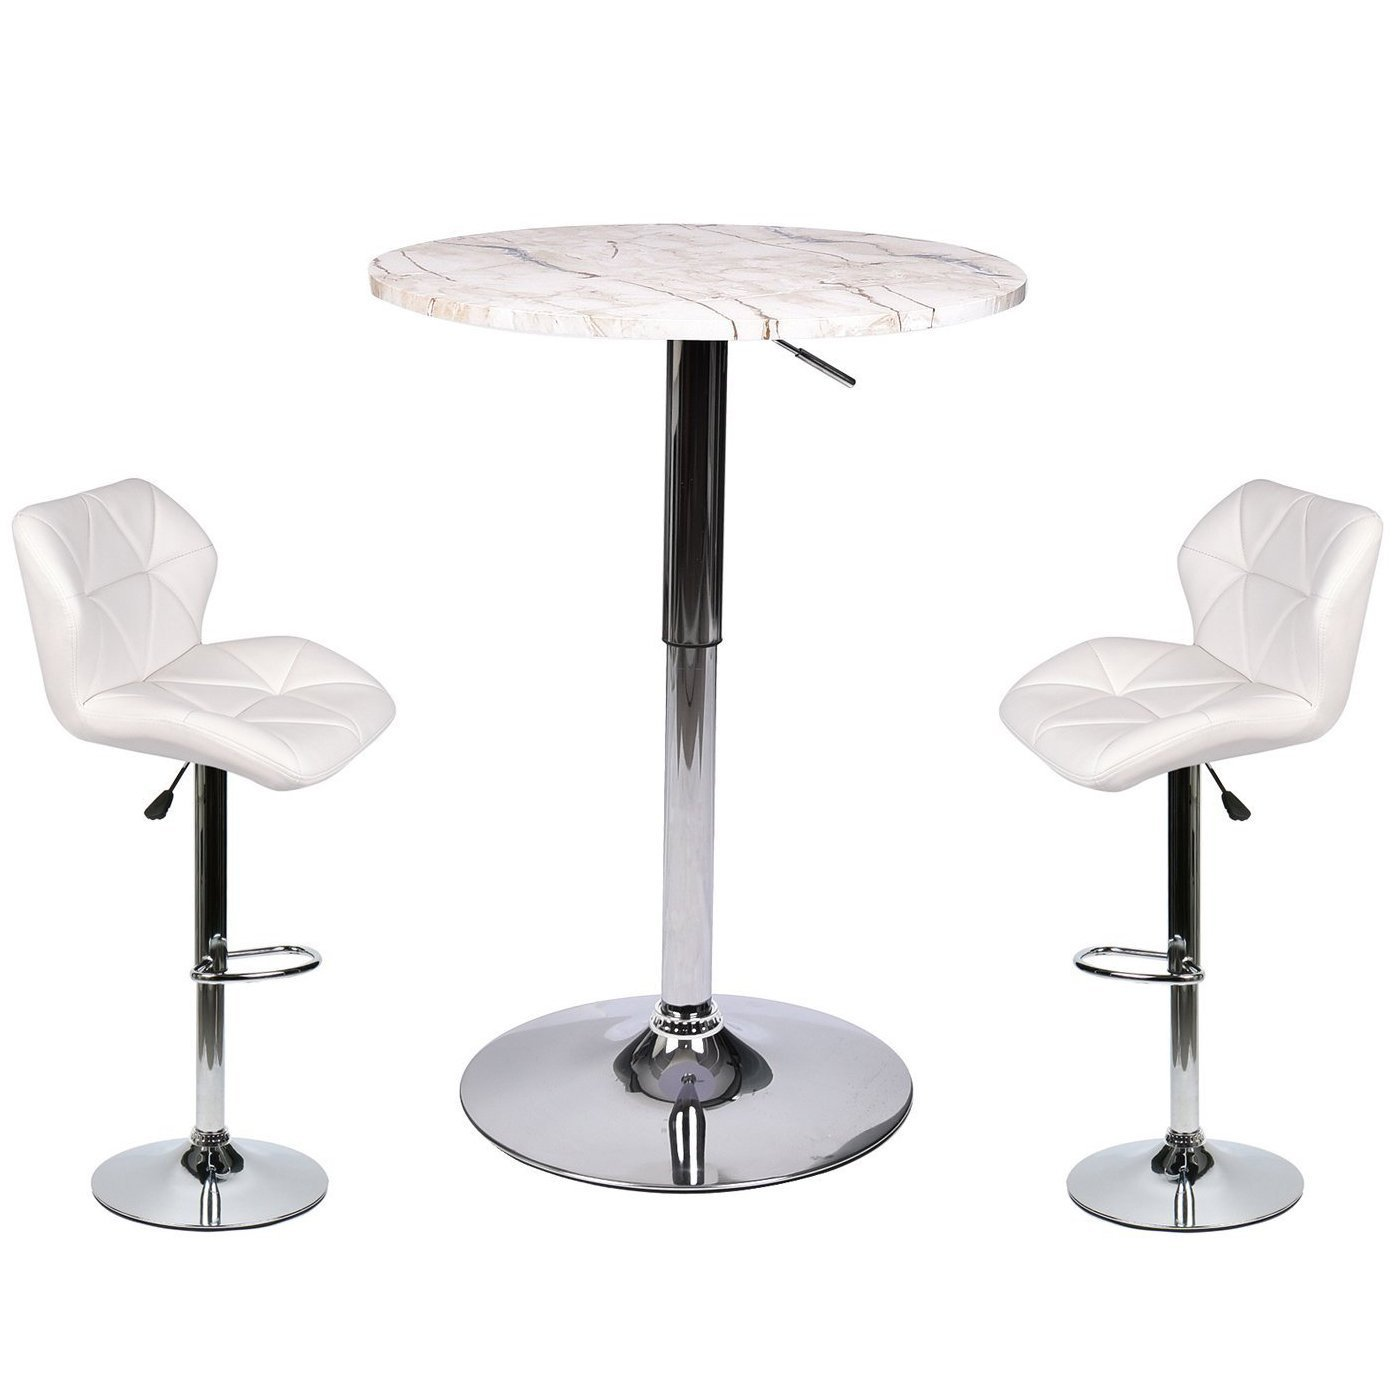 Modern Bar Table with Round Top with 2 Adjustable PU Leather Stools Set - 3 Piece Pub Dining Kitchen Furniture (White 3)